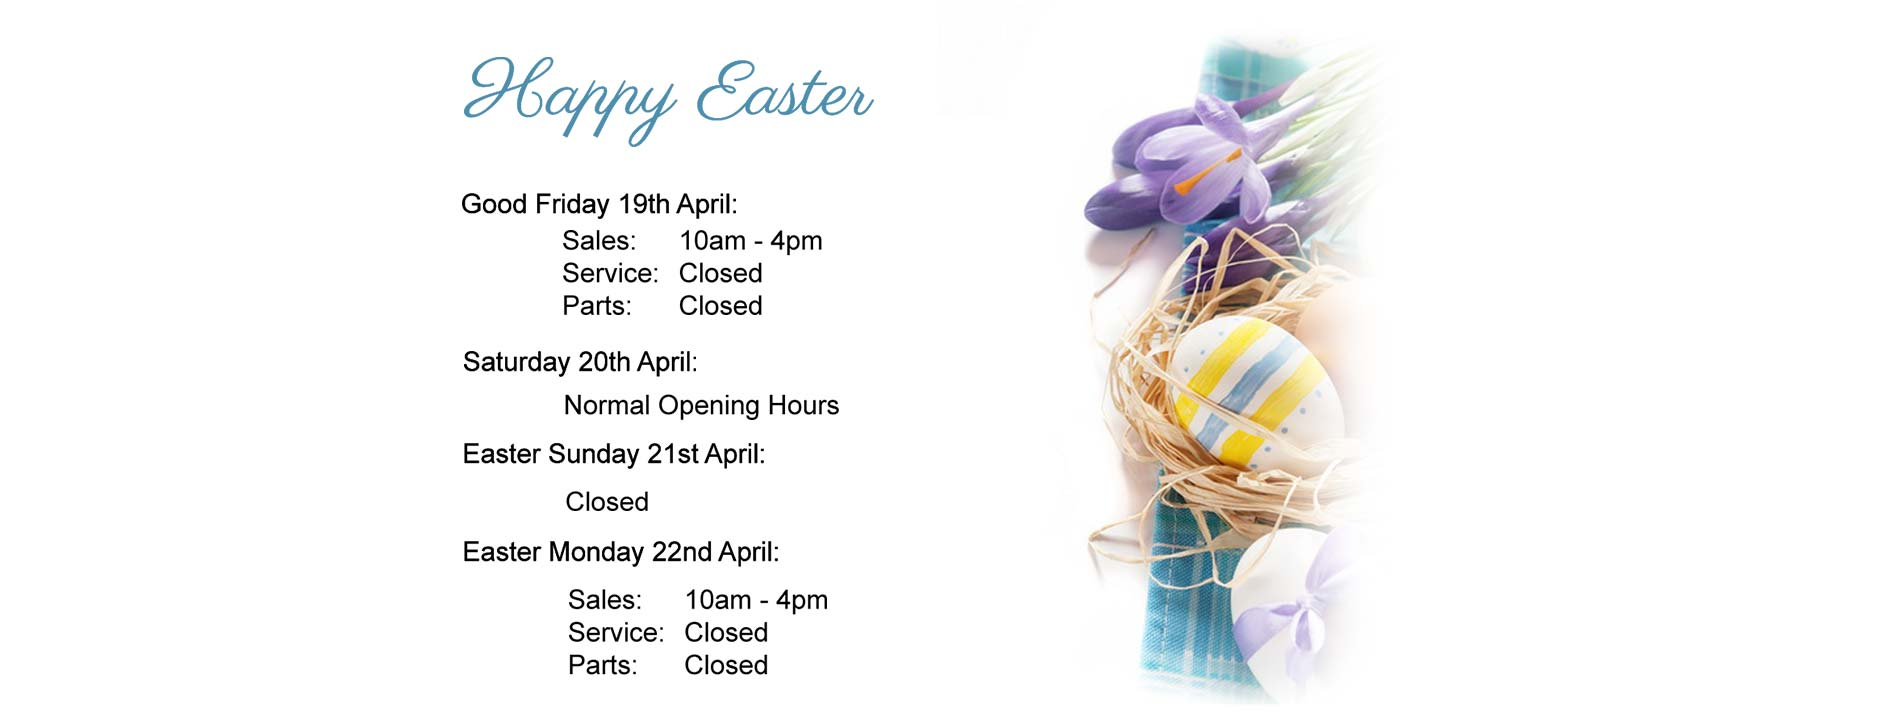 charters-group-easter-opening-hours-m-sli